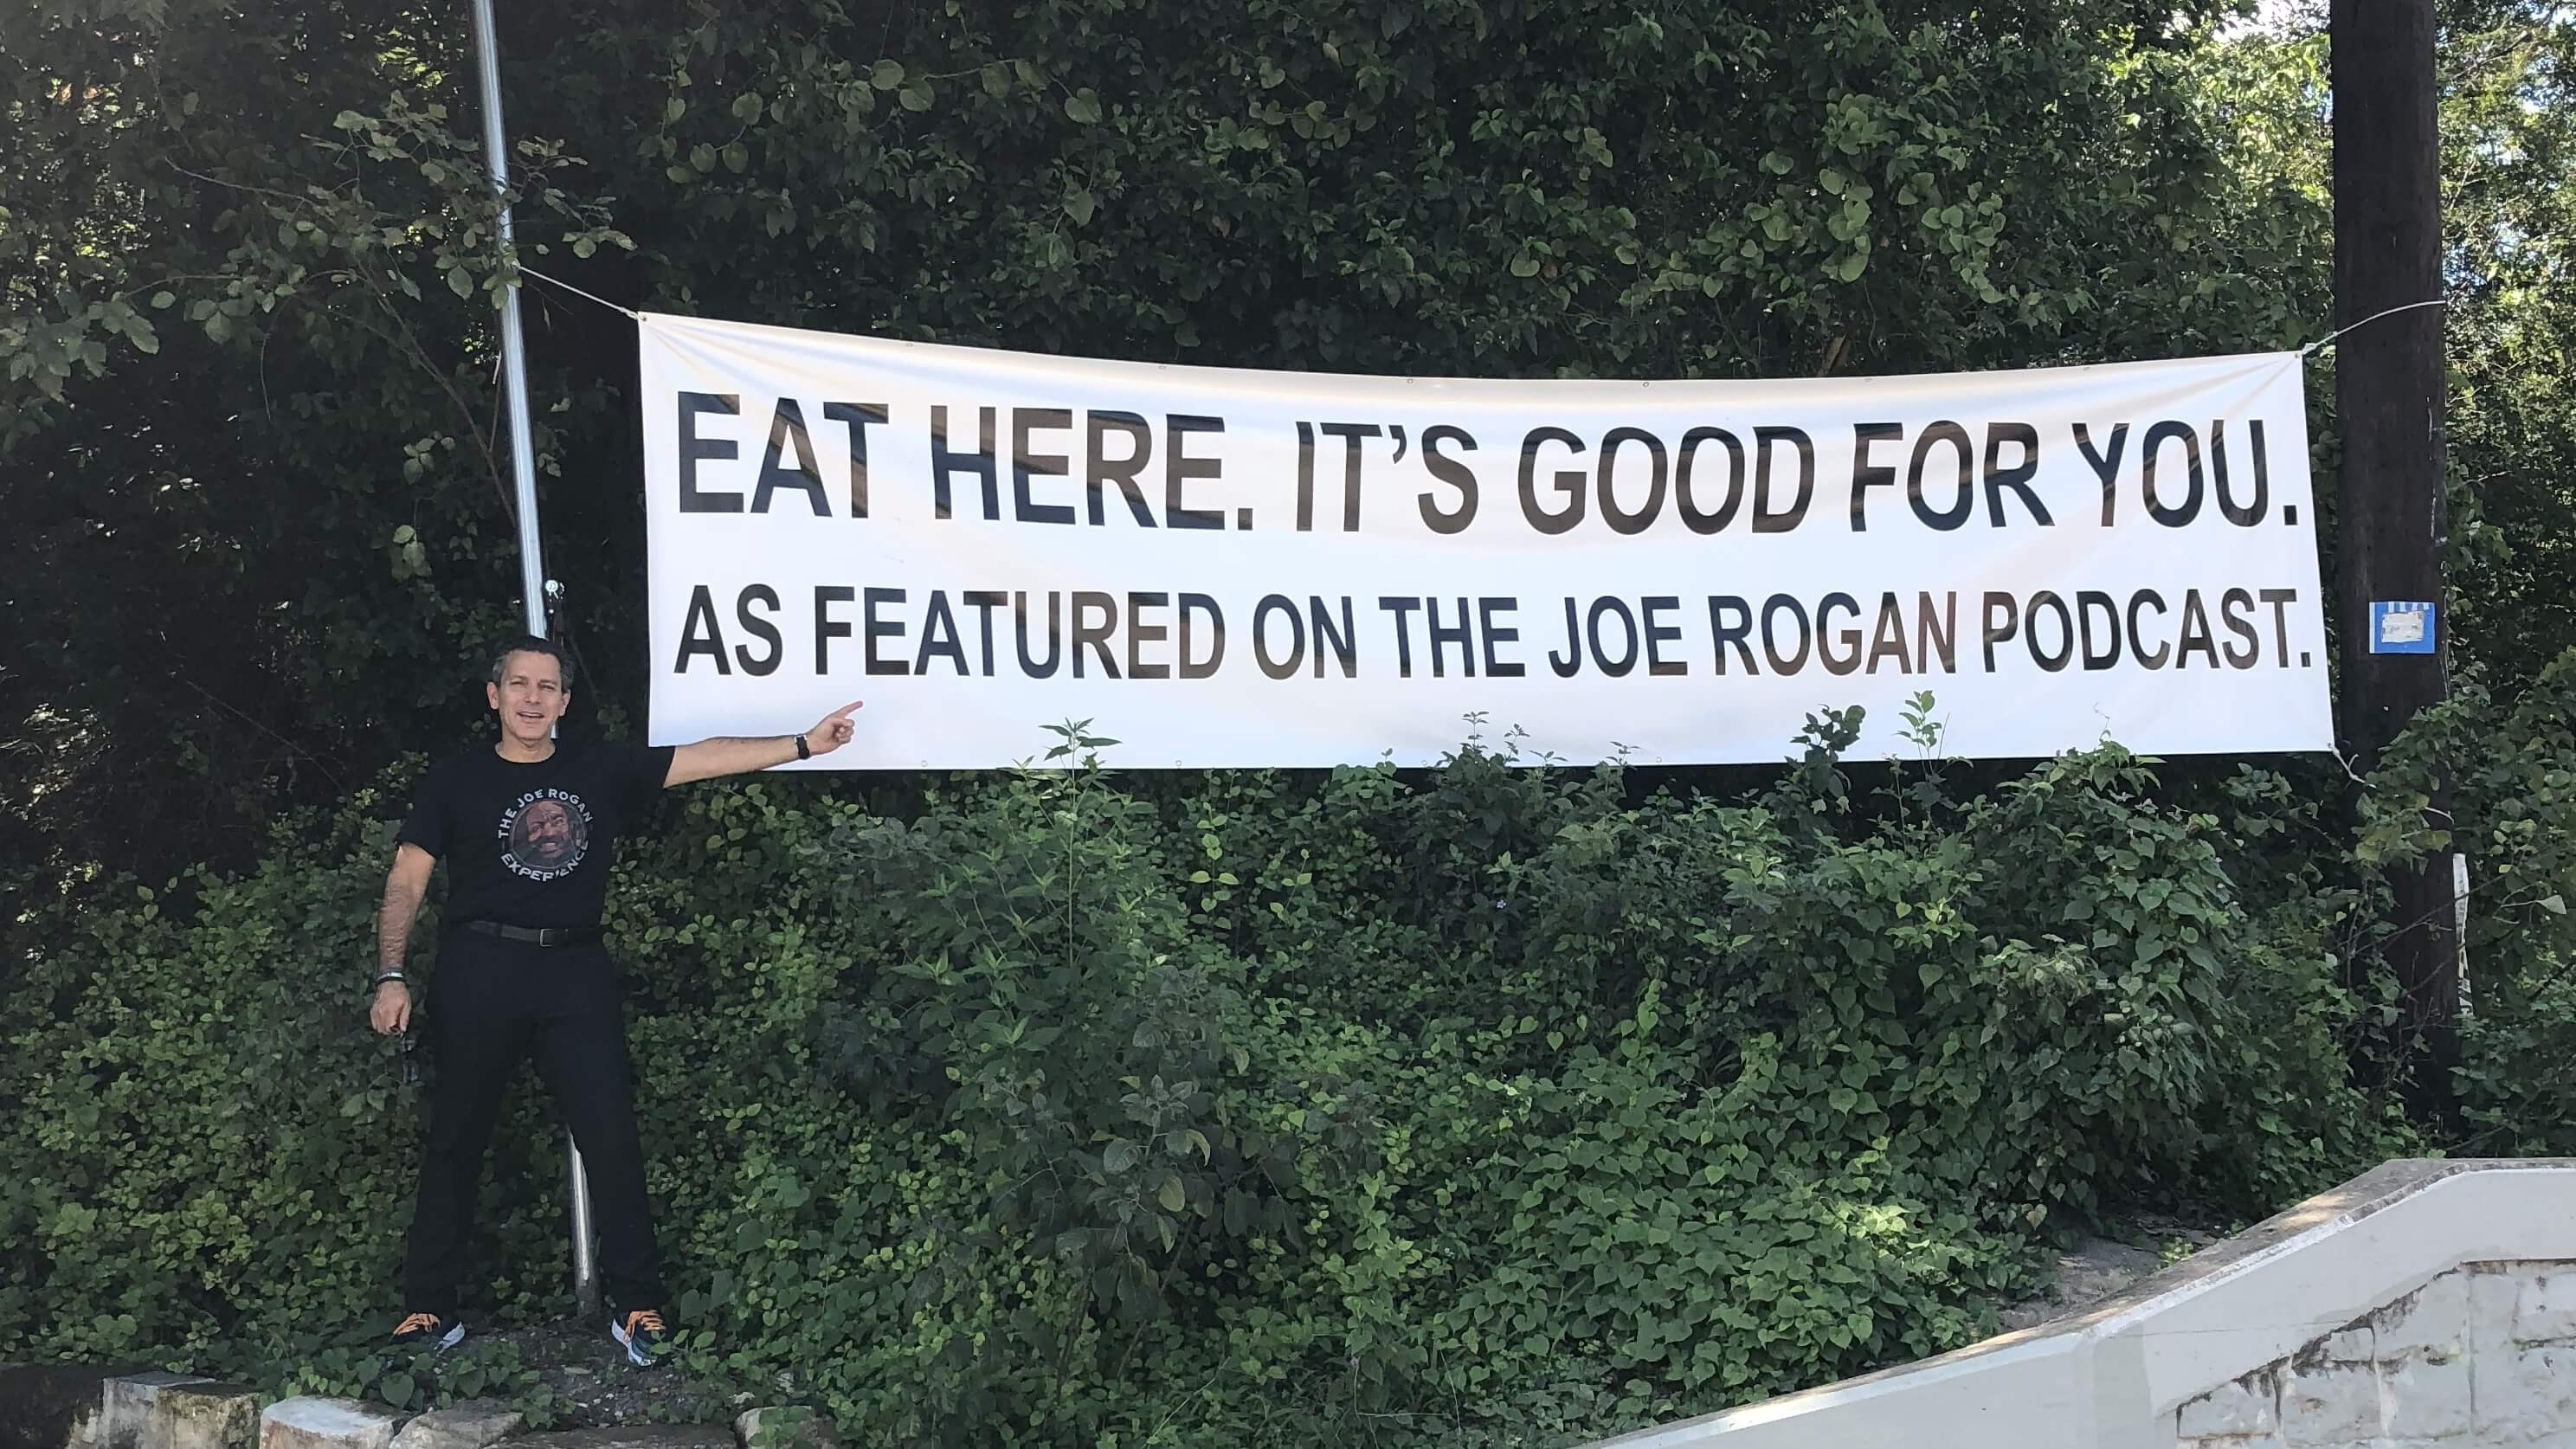 Vegan Cardiologist Joel Kahn's ATX Food Truck Promotes Joe Rogan Podcast Feature